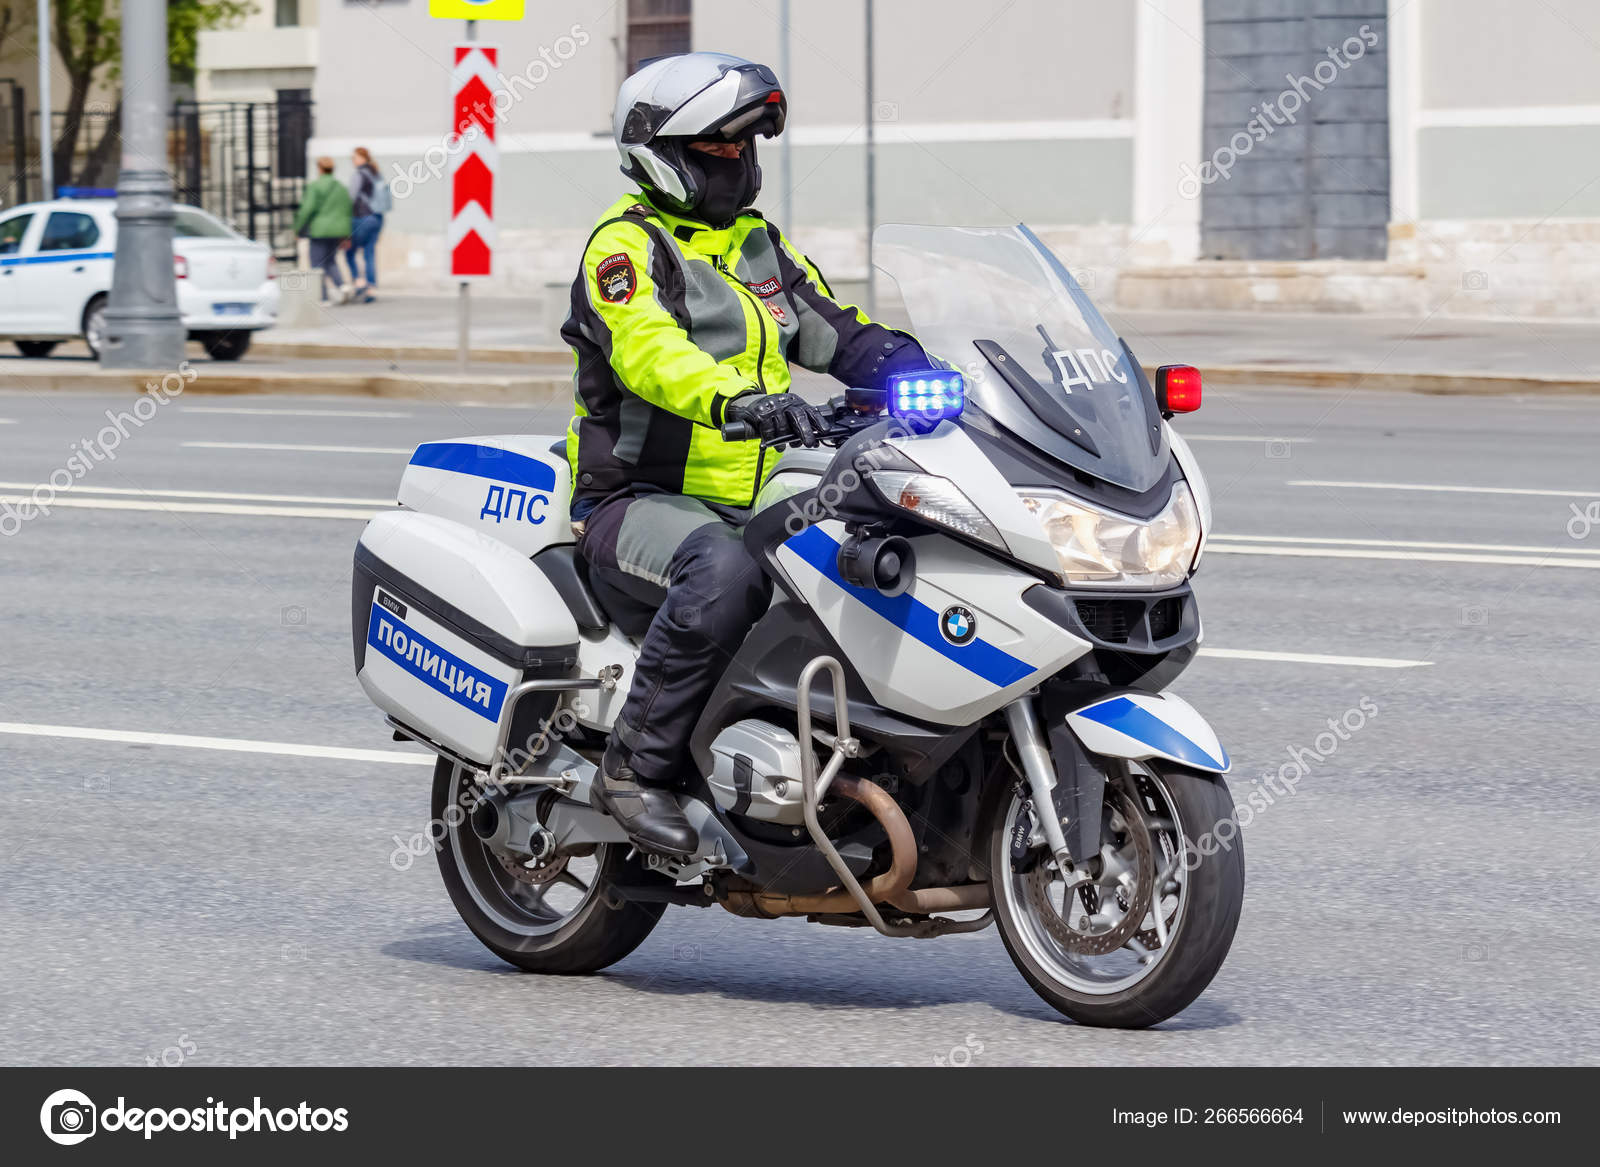 Moscow Russia May 04 2019 Police On Modern Bmw Motorcycle With Flashing Red And Blue Lights Ride The Street In Sunny Day Stock Editorial Photo Bonekot 266566664